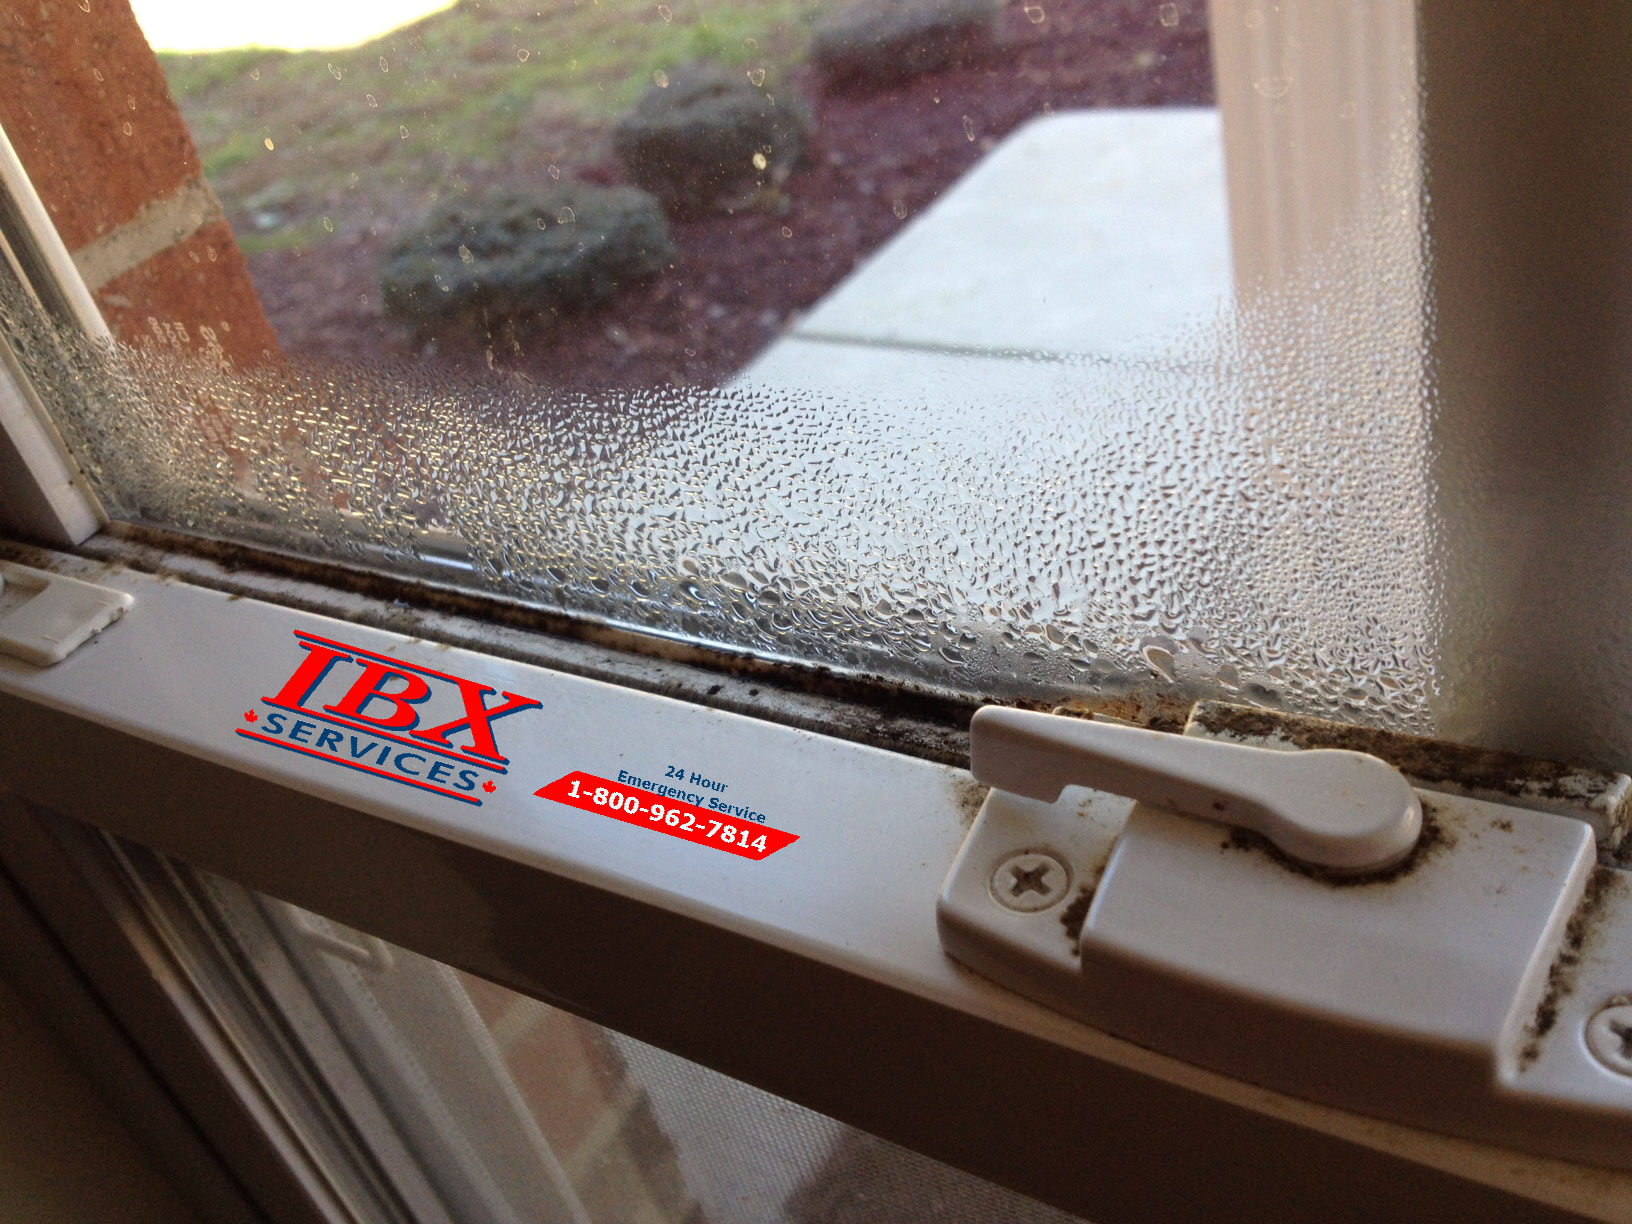 Mold | Control Window Condensation To Prevent Its Growth